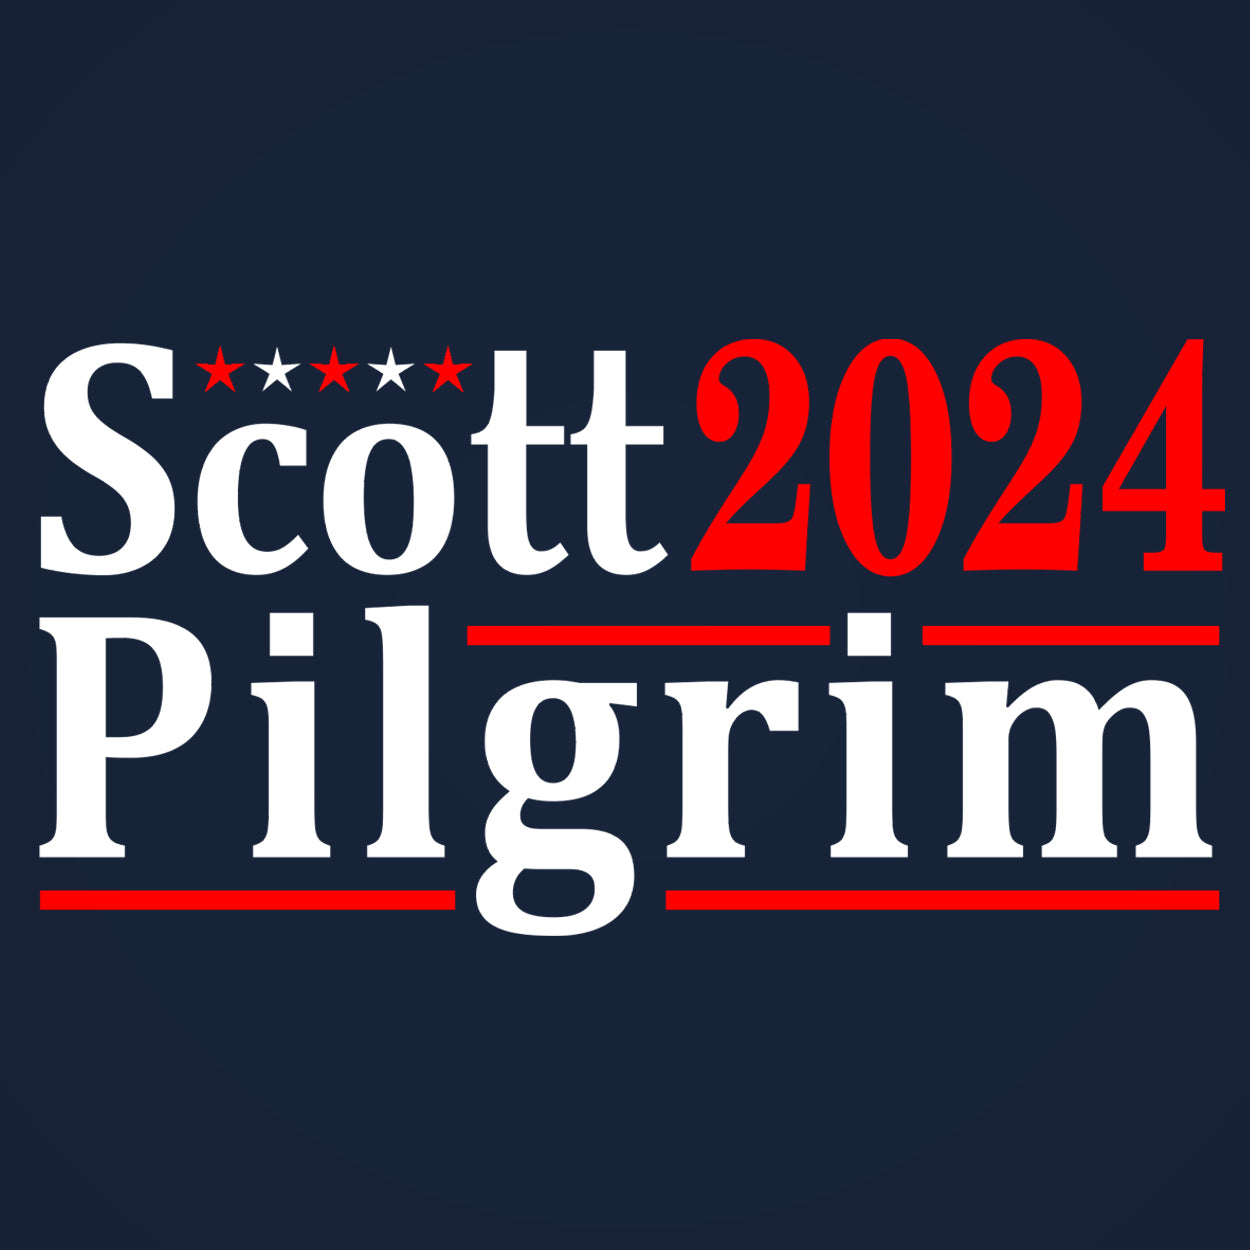 SCOTT PILGRIM 2020 ELECTION - DonkeyTees